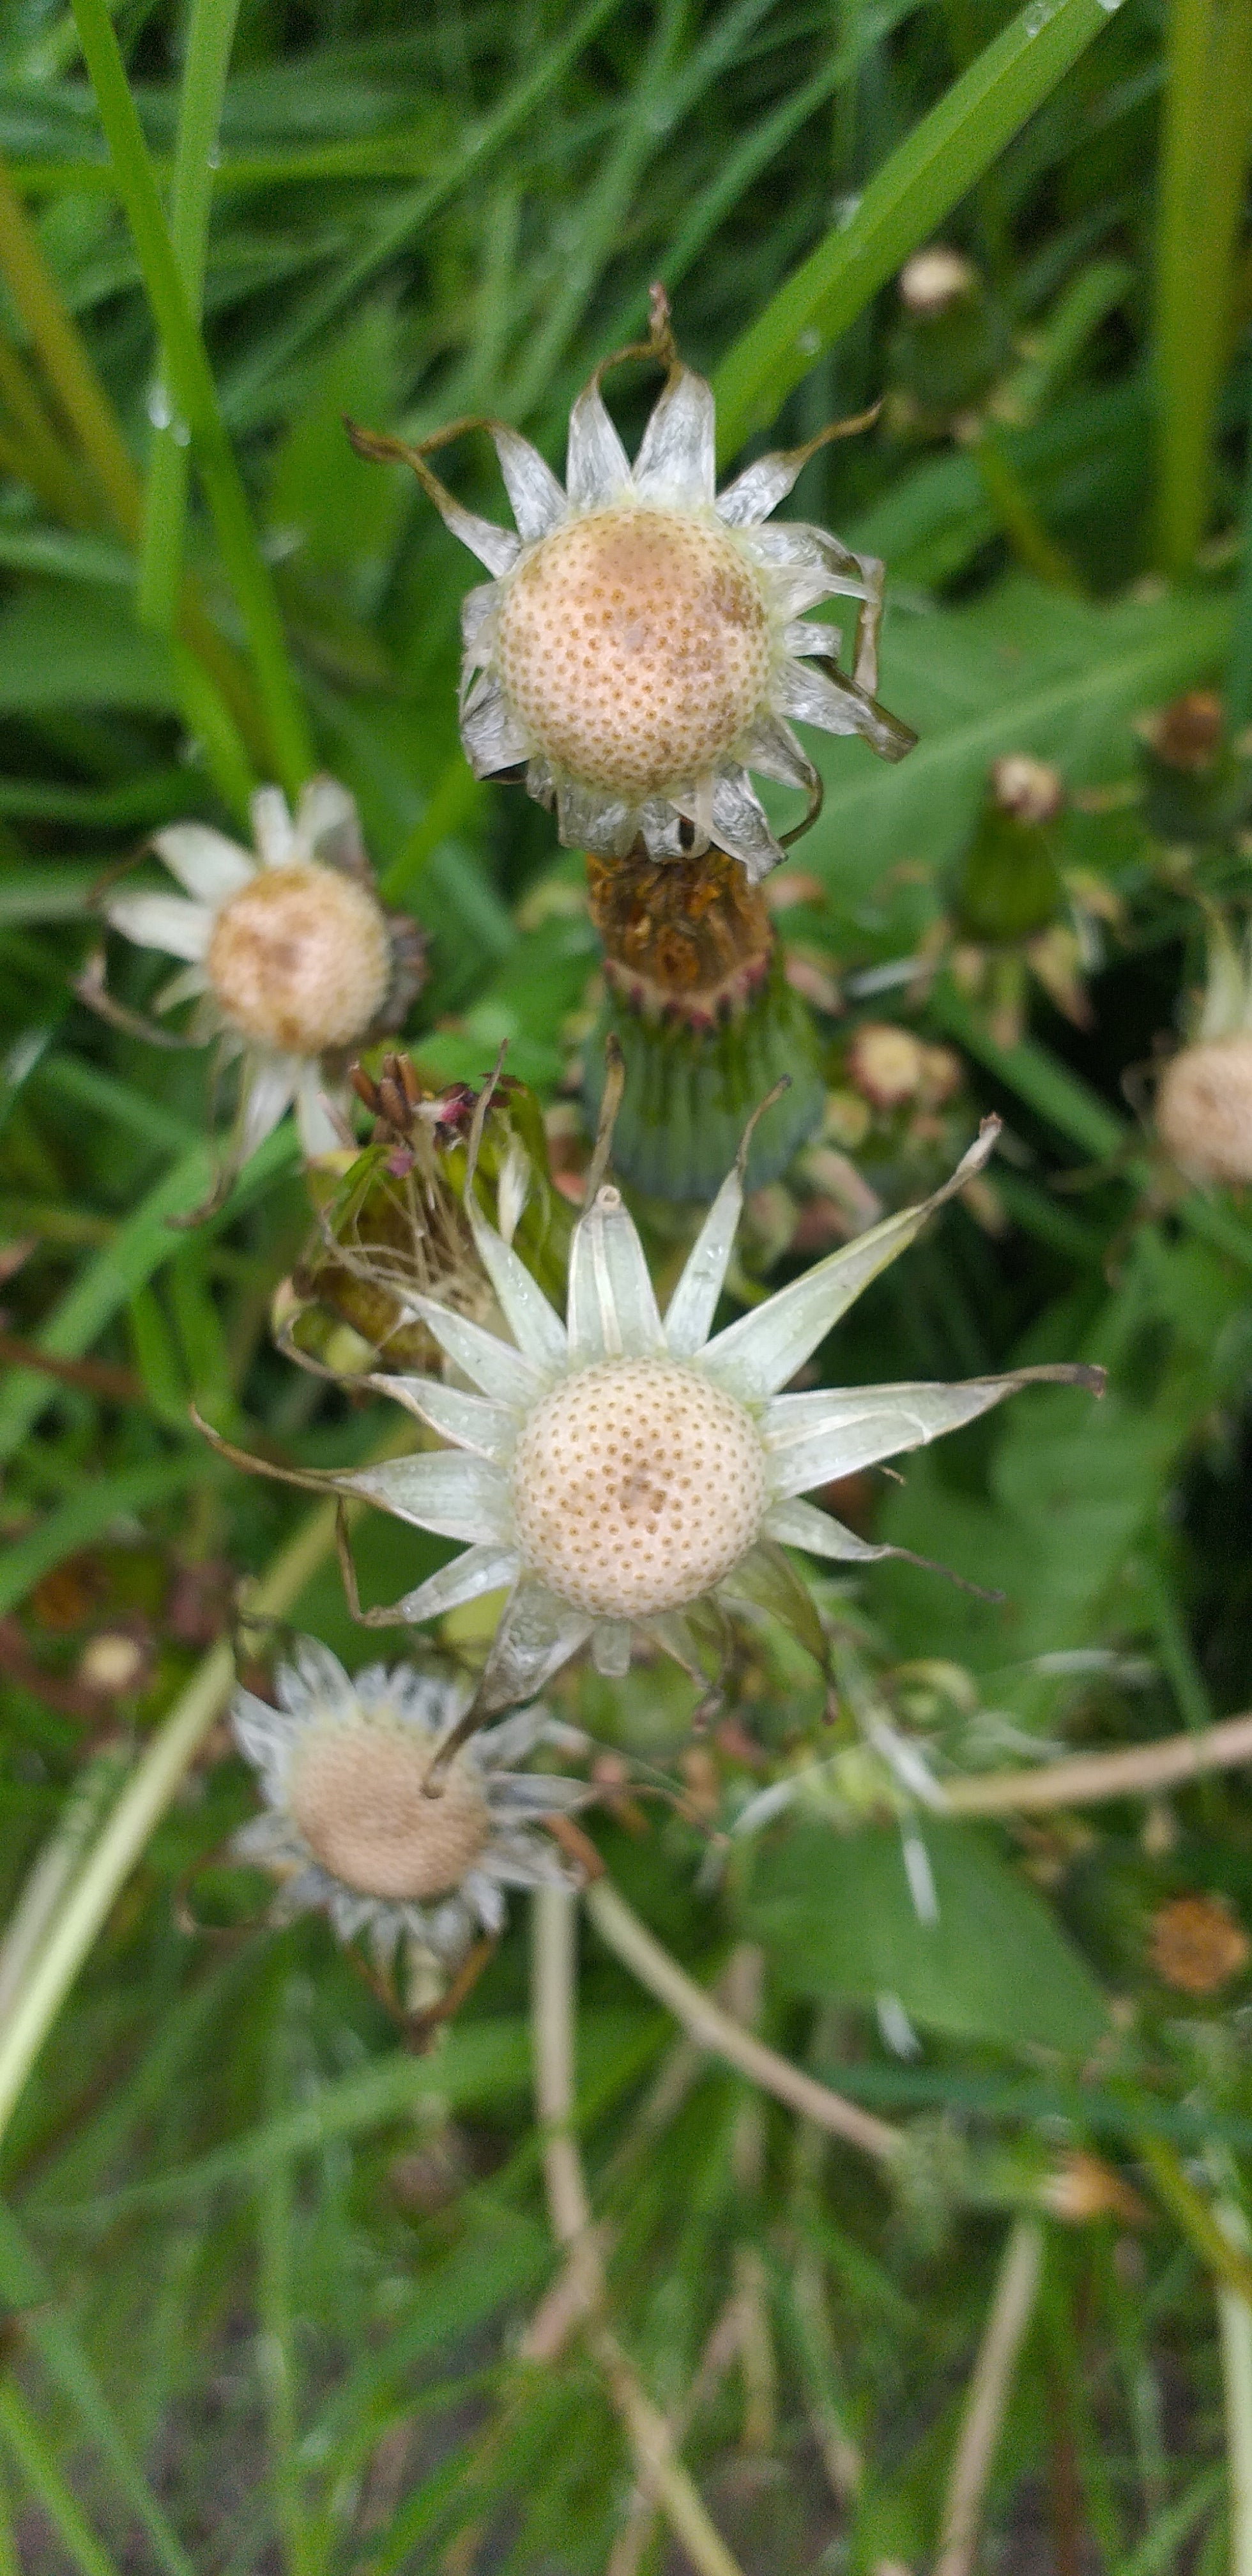 Dandelion stars after seeds by Alice Draws the Line